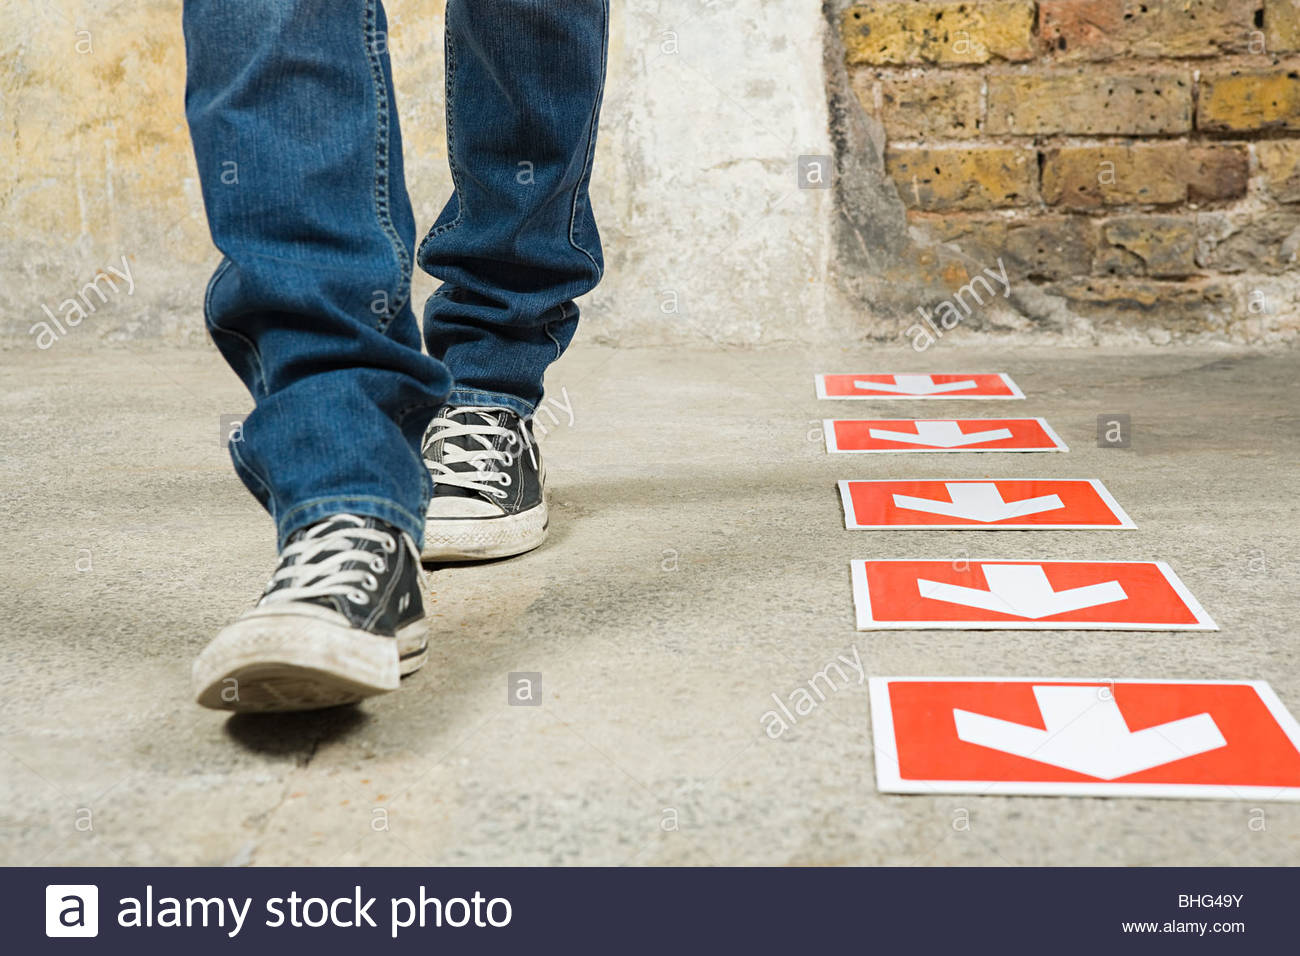 Person walking by arrows - Stock Image